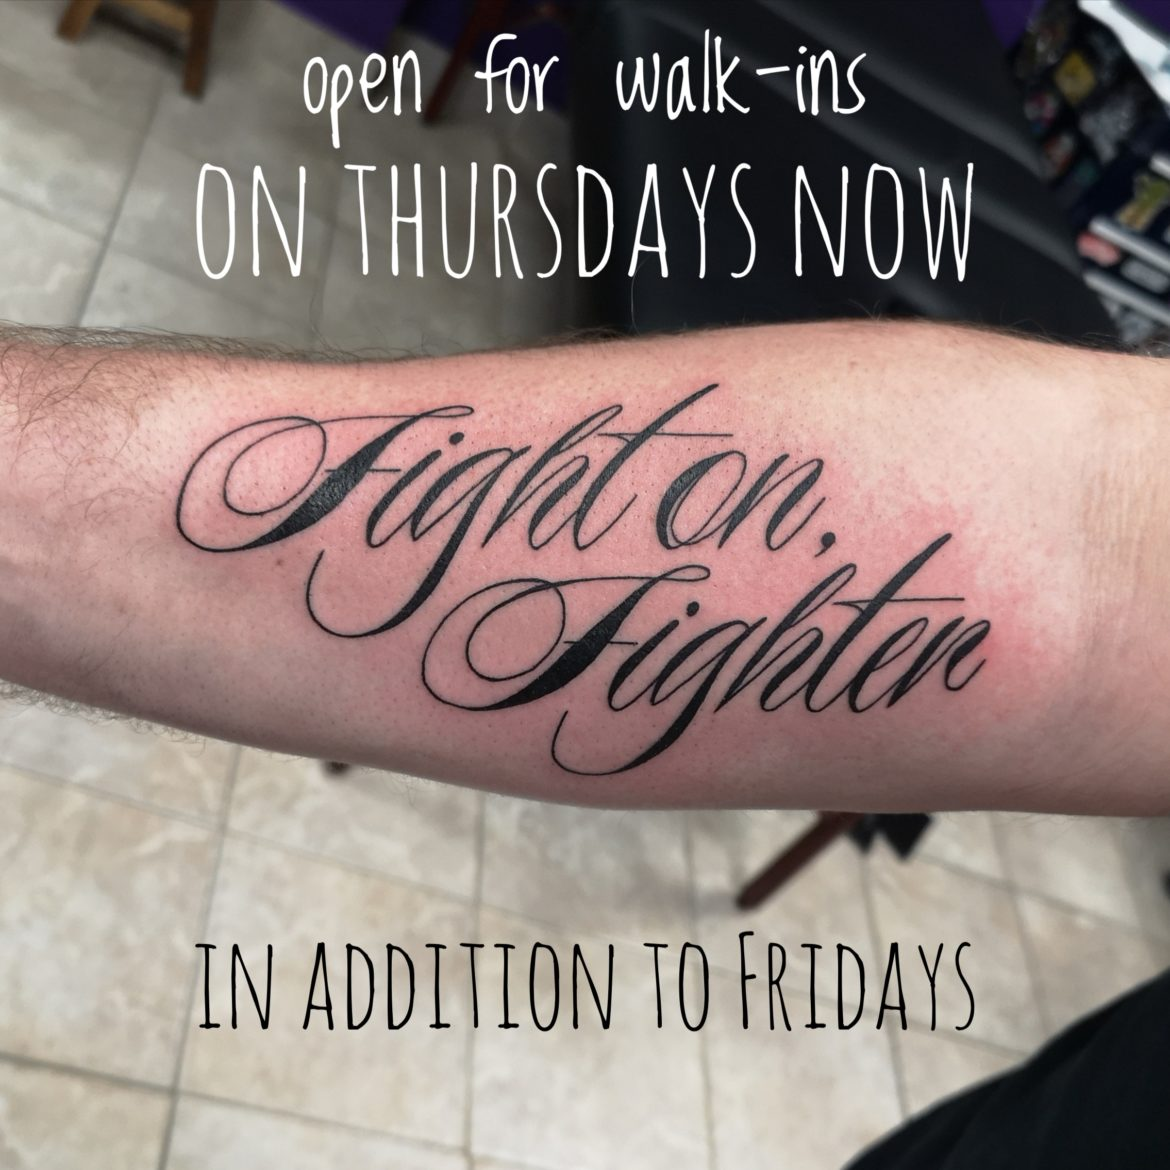 Walk-ins on Thursdays now too!